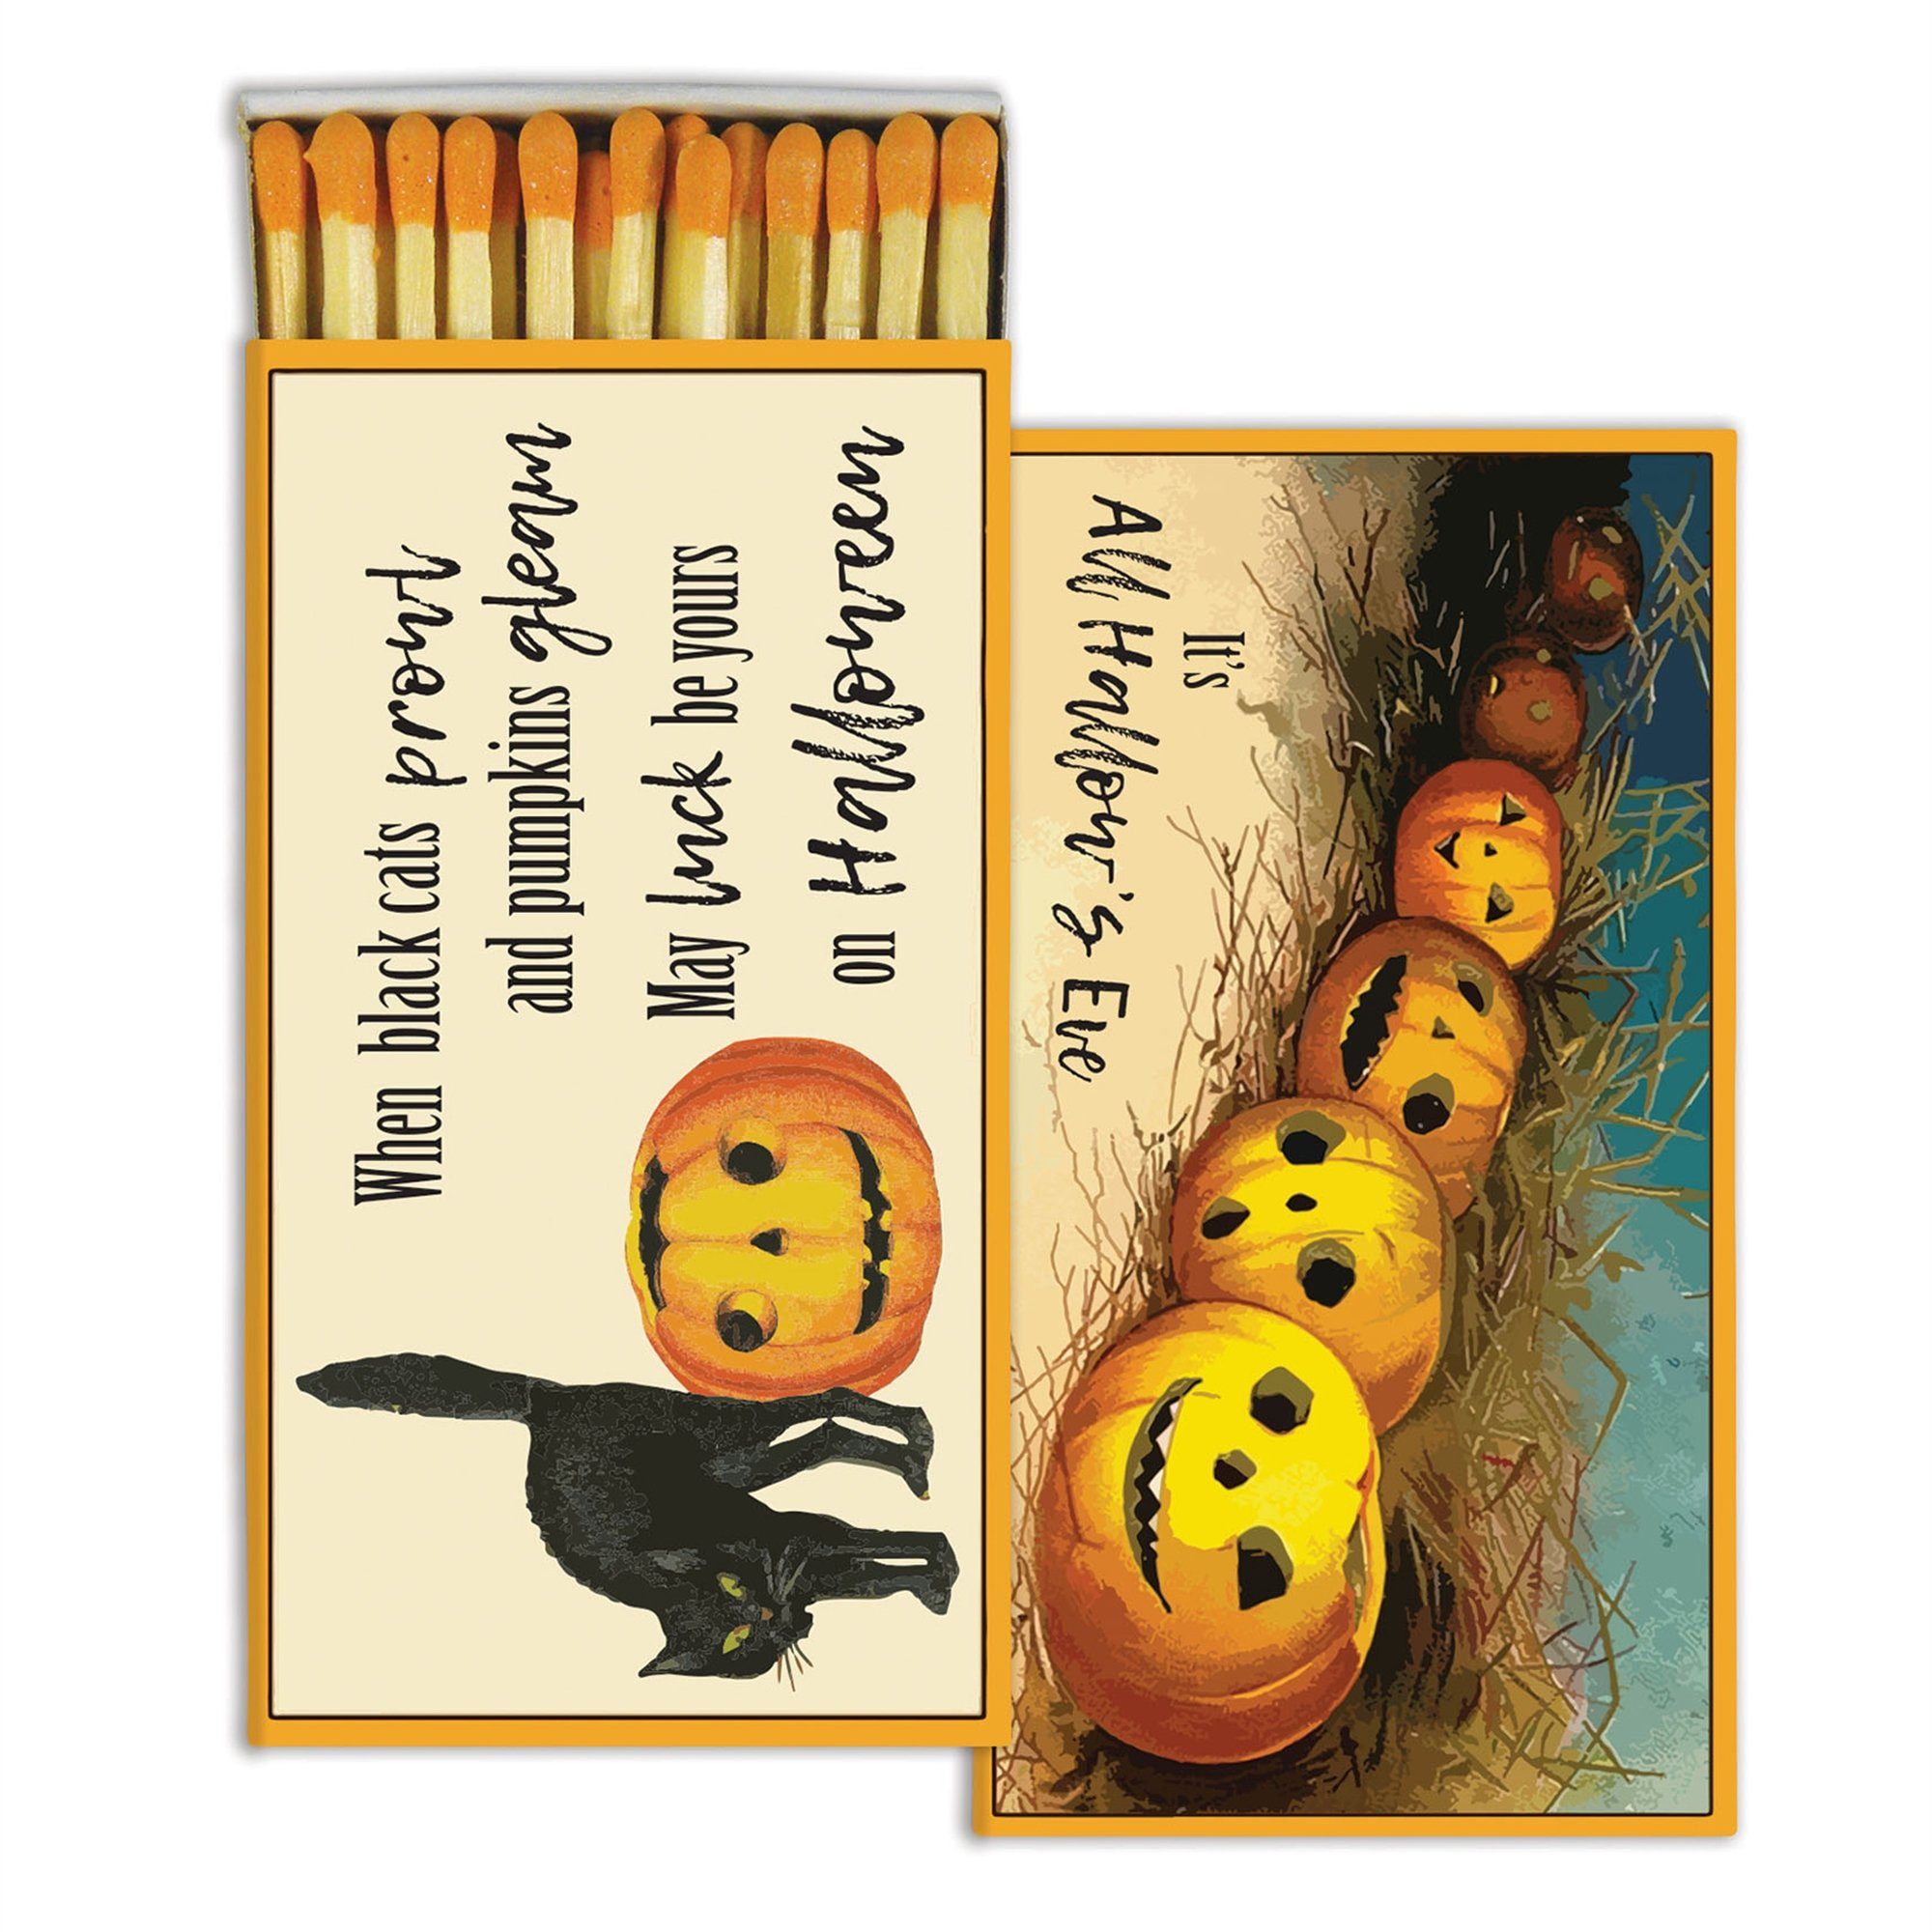 HomArt Decorative All Hallows Eve Halloween Match Boxes with Long Kitchen Matches Great for Lighting Candles, Grills, Fireplaces and More | Set of 10 Match Boxes